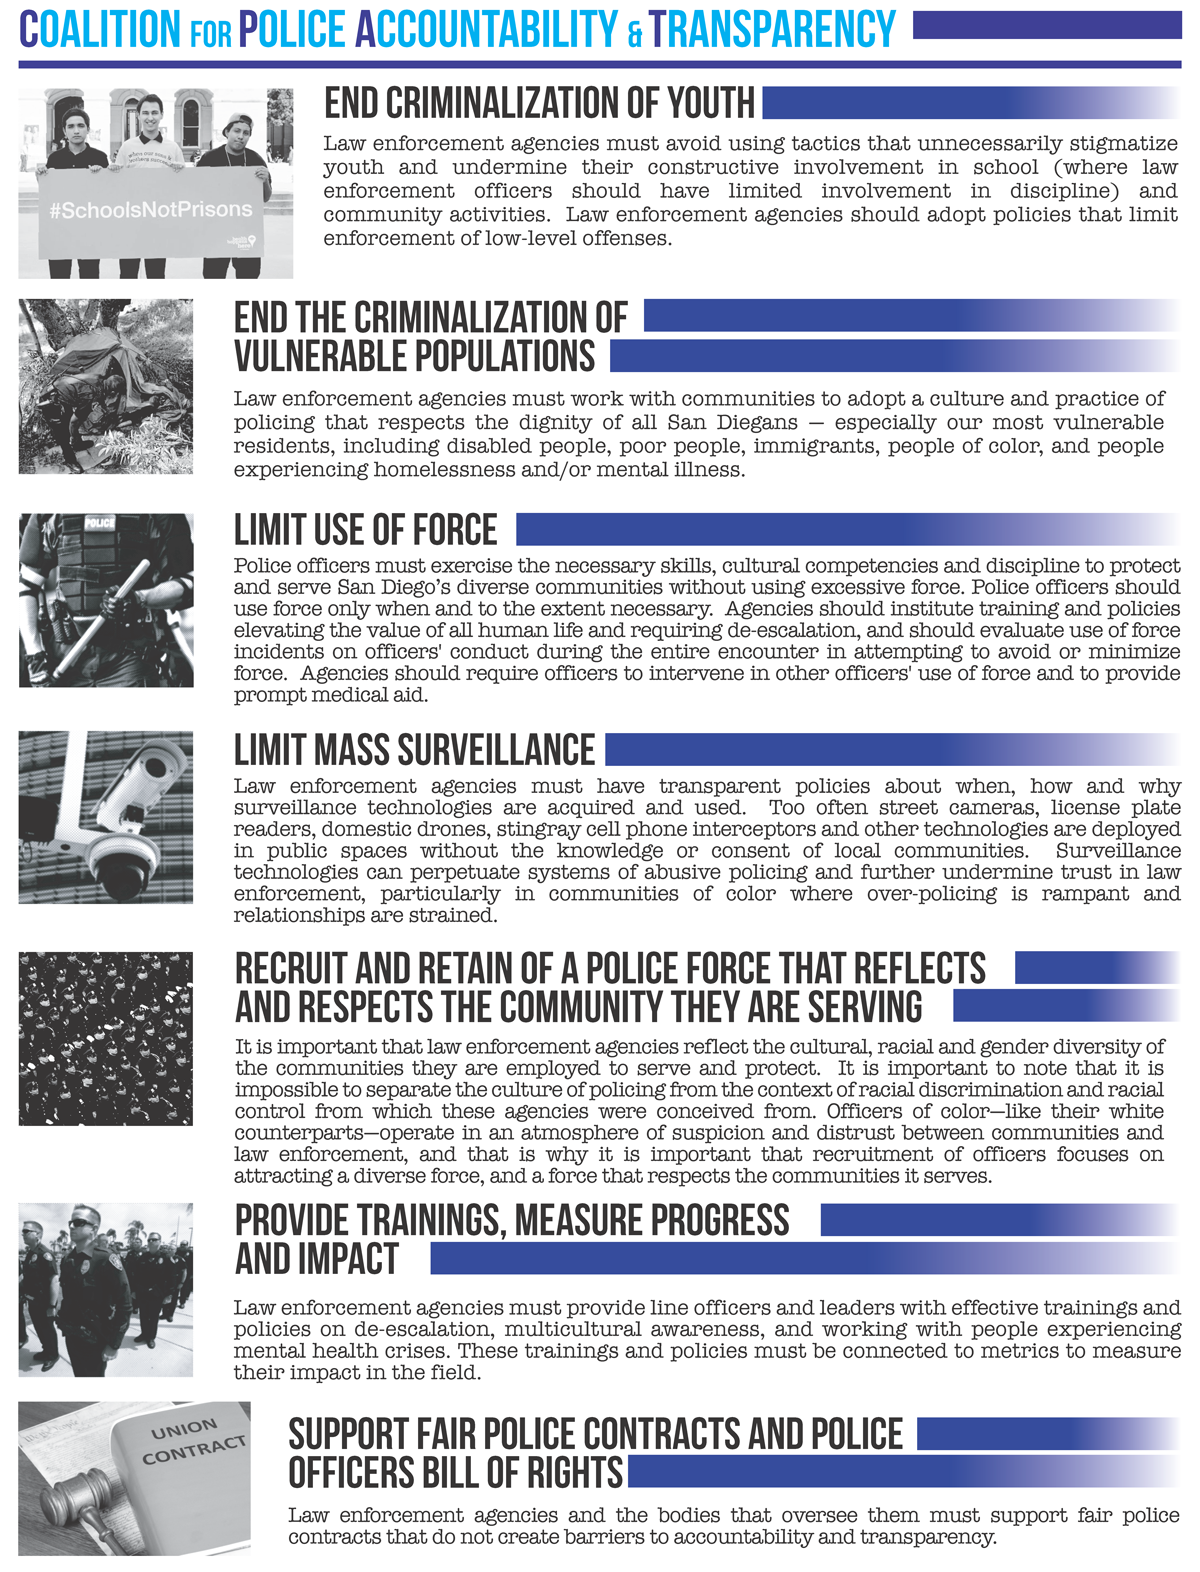 CPAT goals for law enforcement